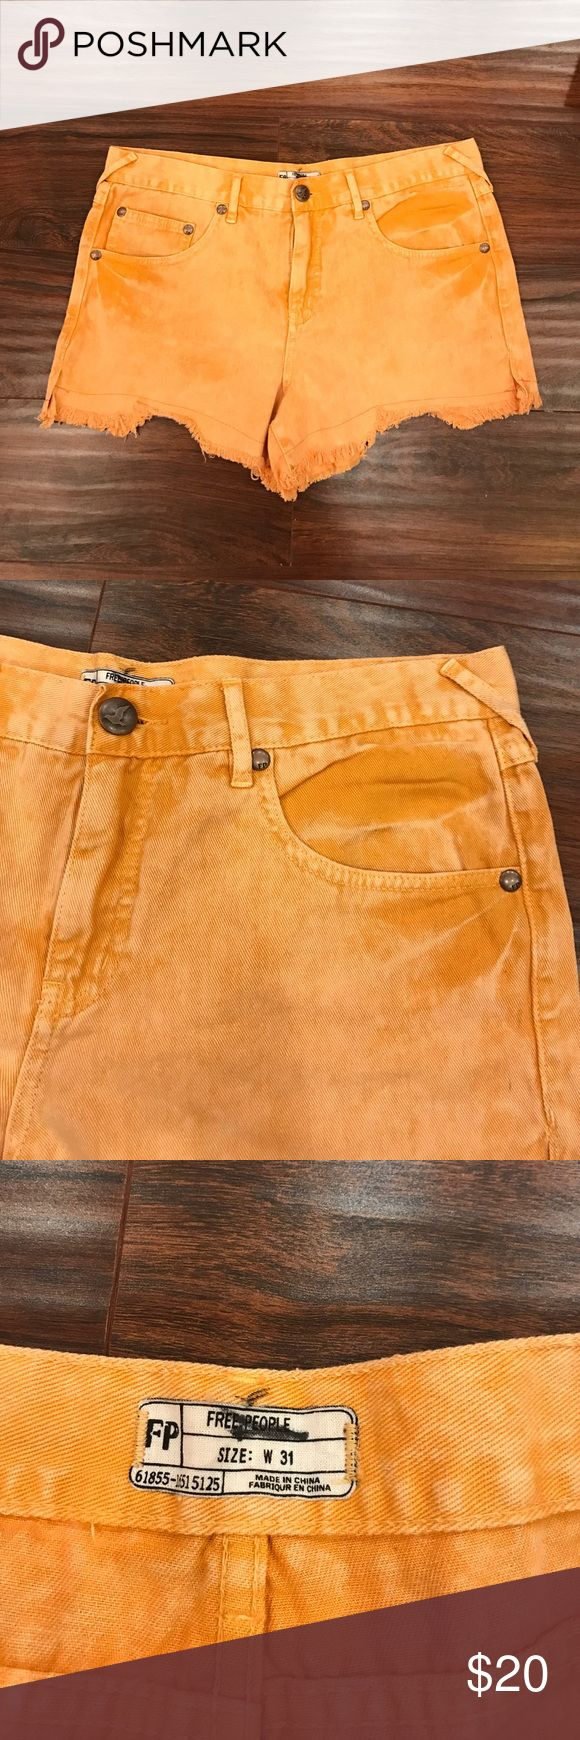 Free People Cut off shorts size 31 Size 31. Women's cut off shorts. Brand new without Tags. Orange vintage wash. Free People Shorts Jean Shorts